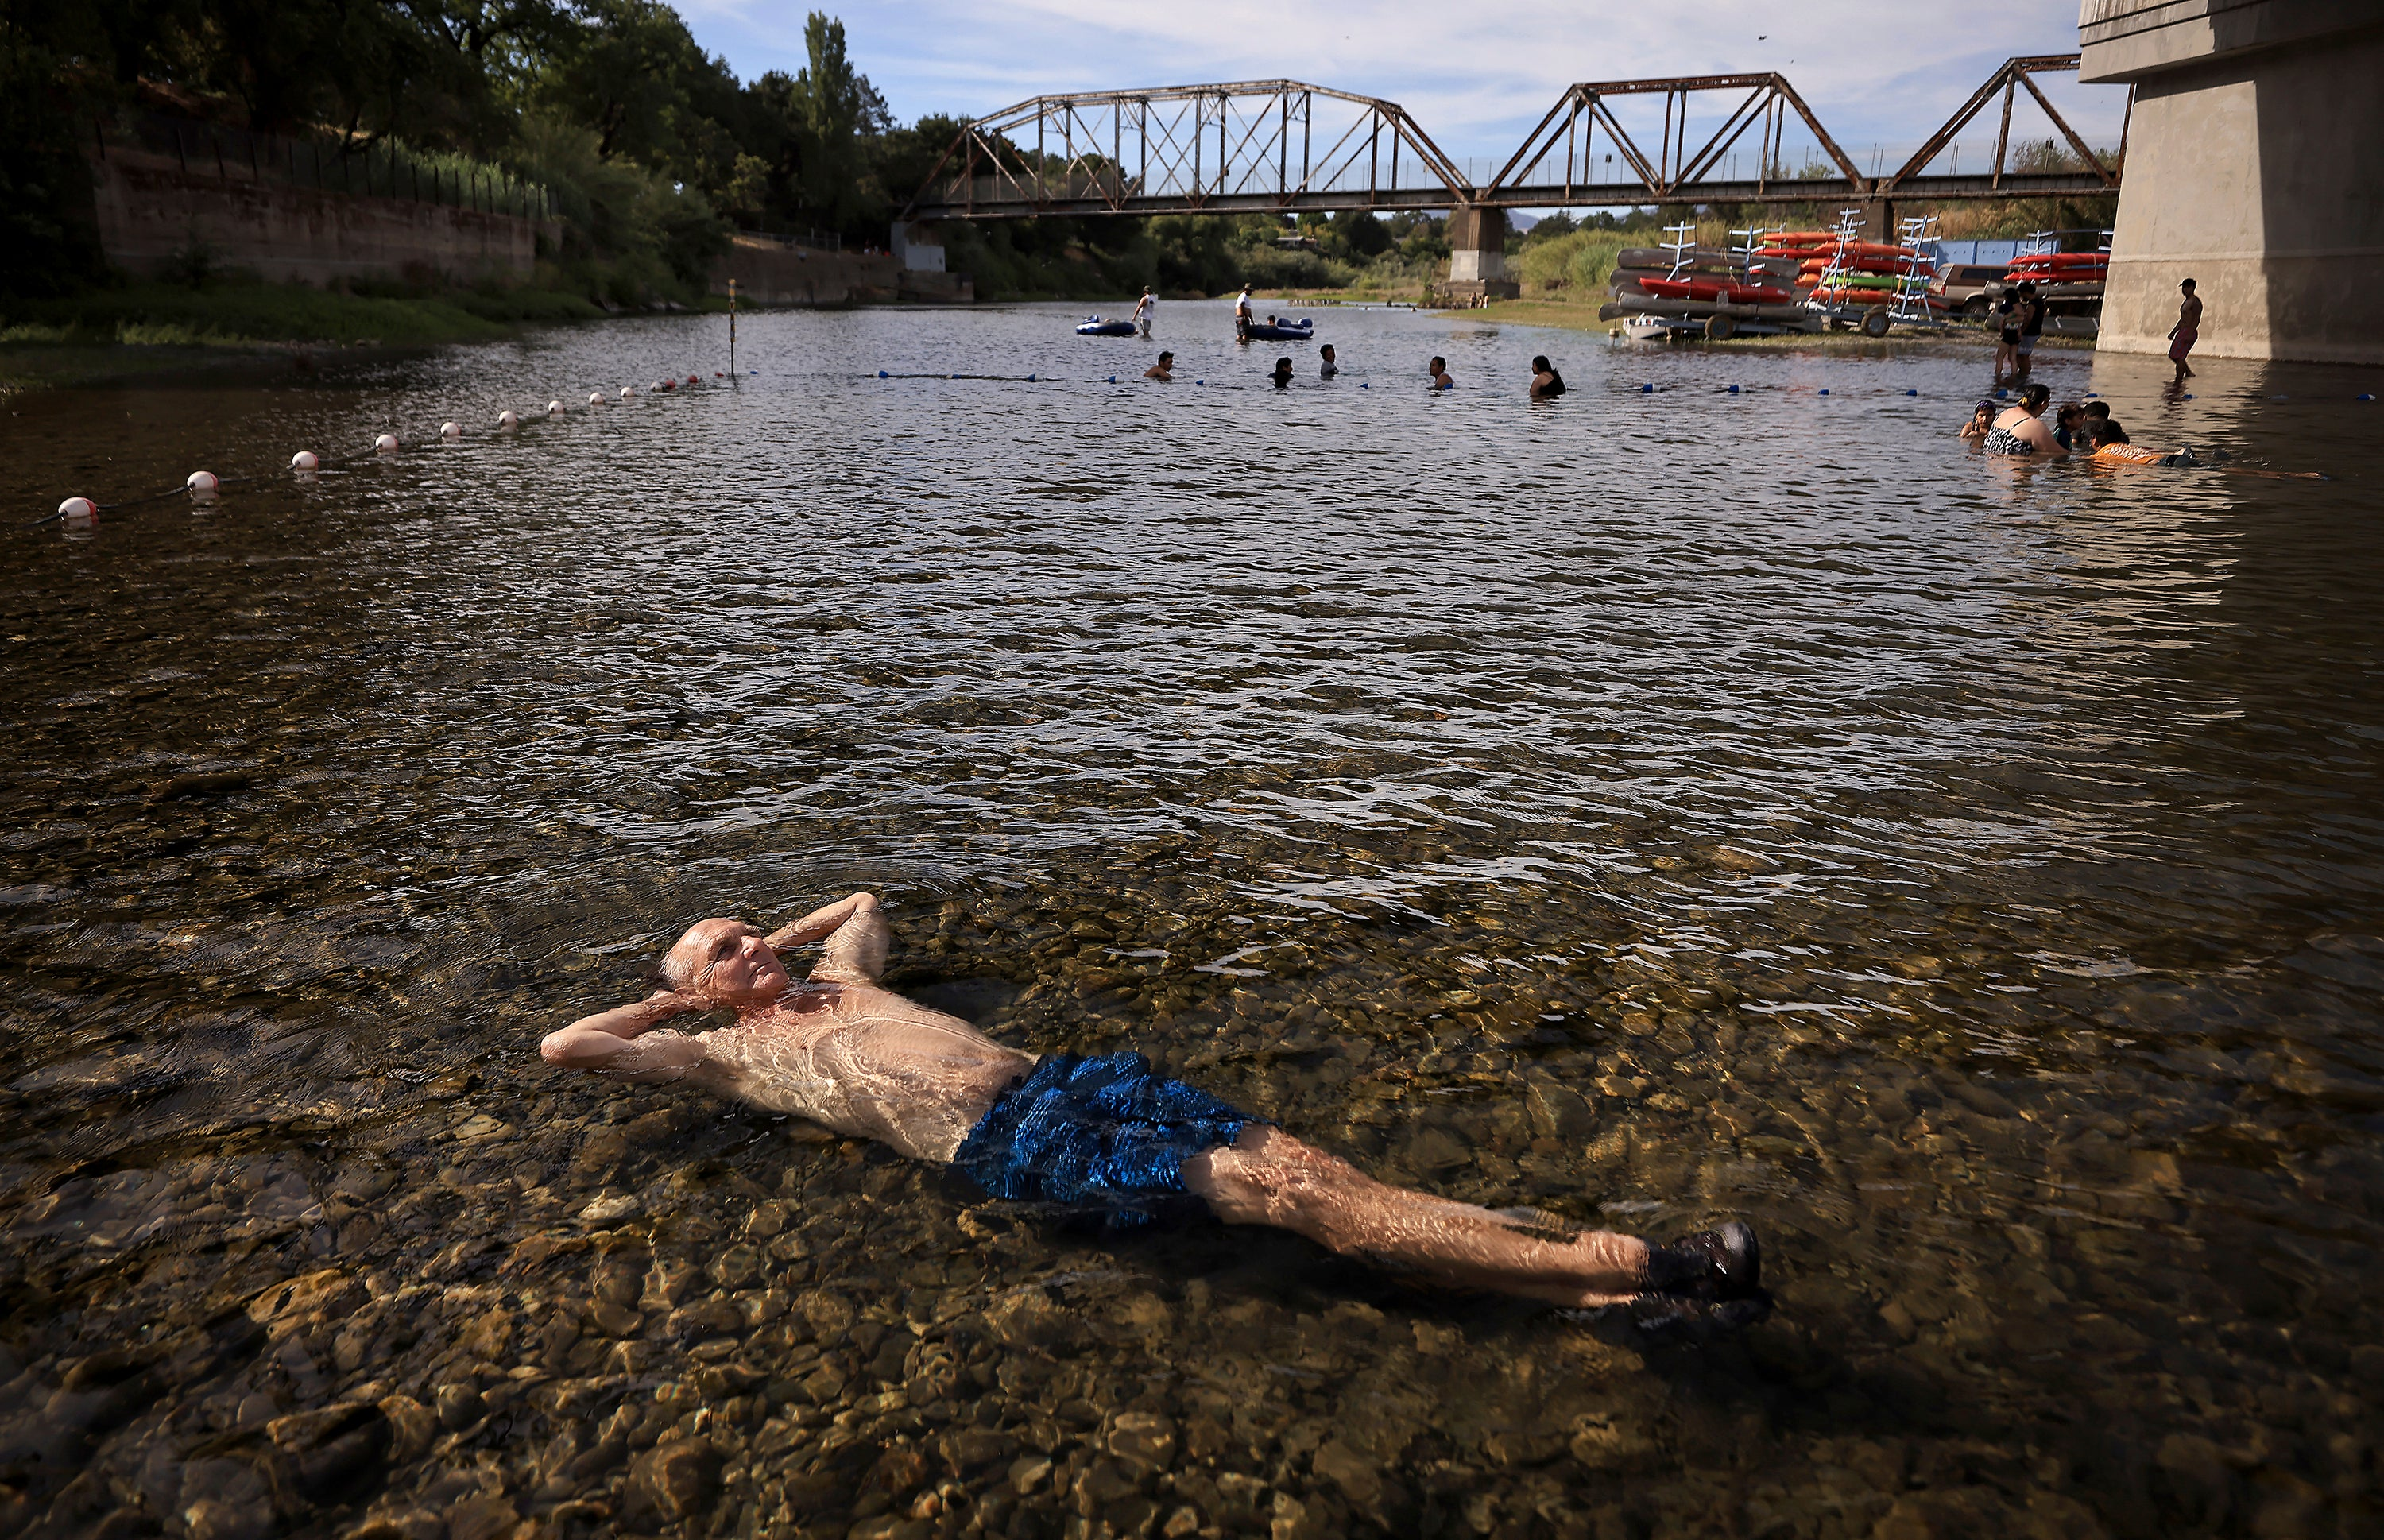 Photos from the Sweltering West